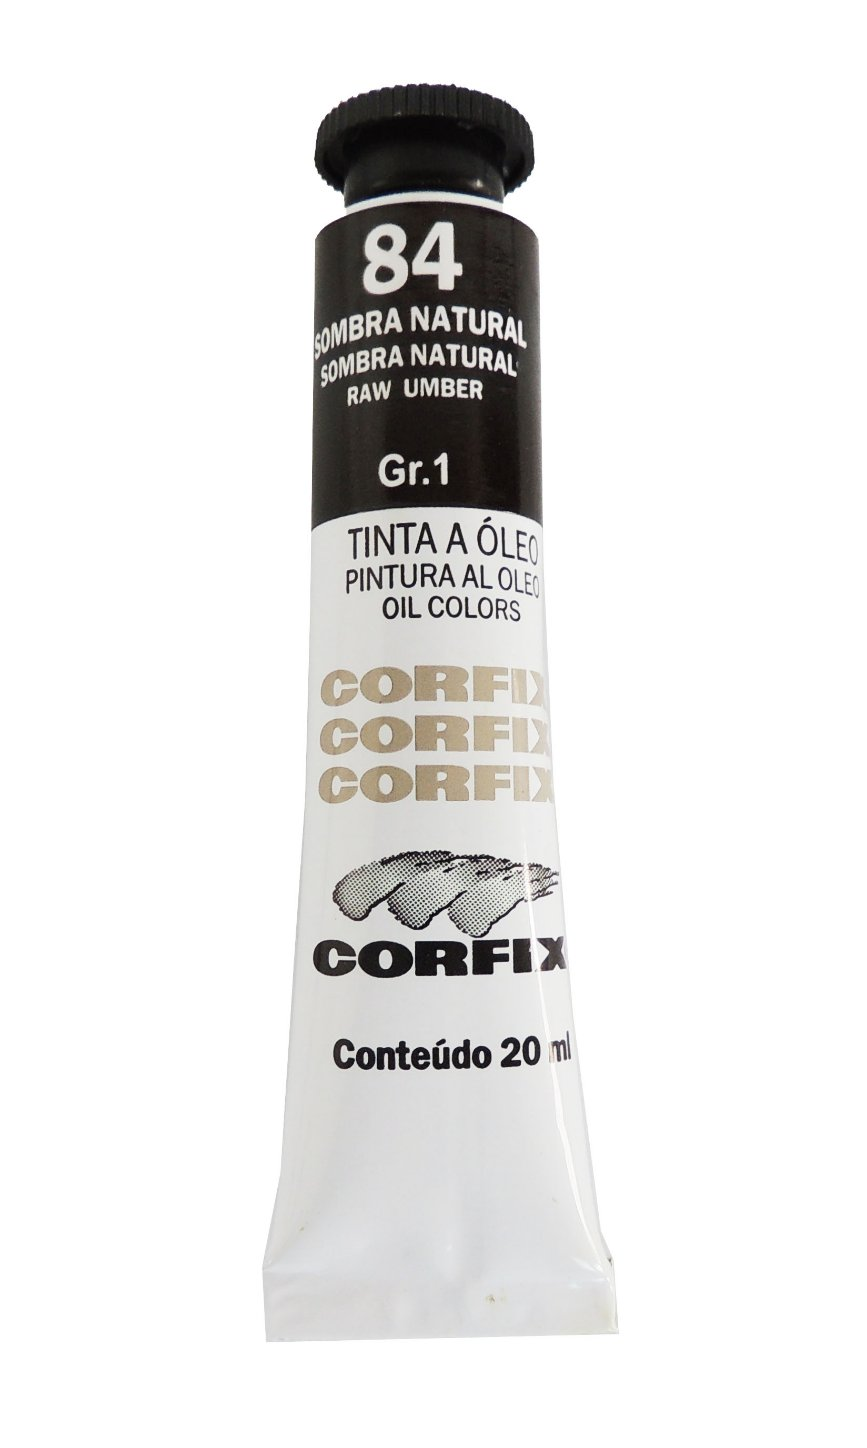 tinta-oleo-corfix-20ml-84-sombra-natural